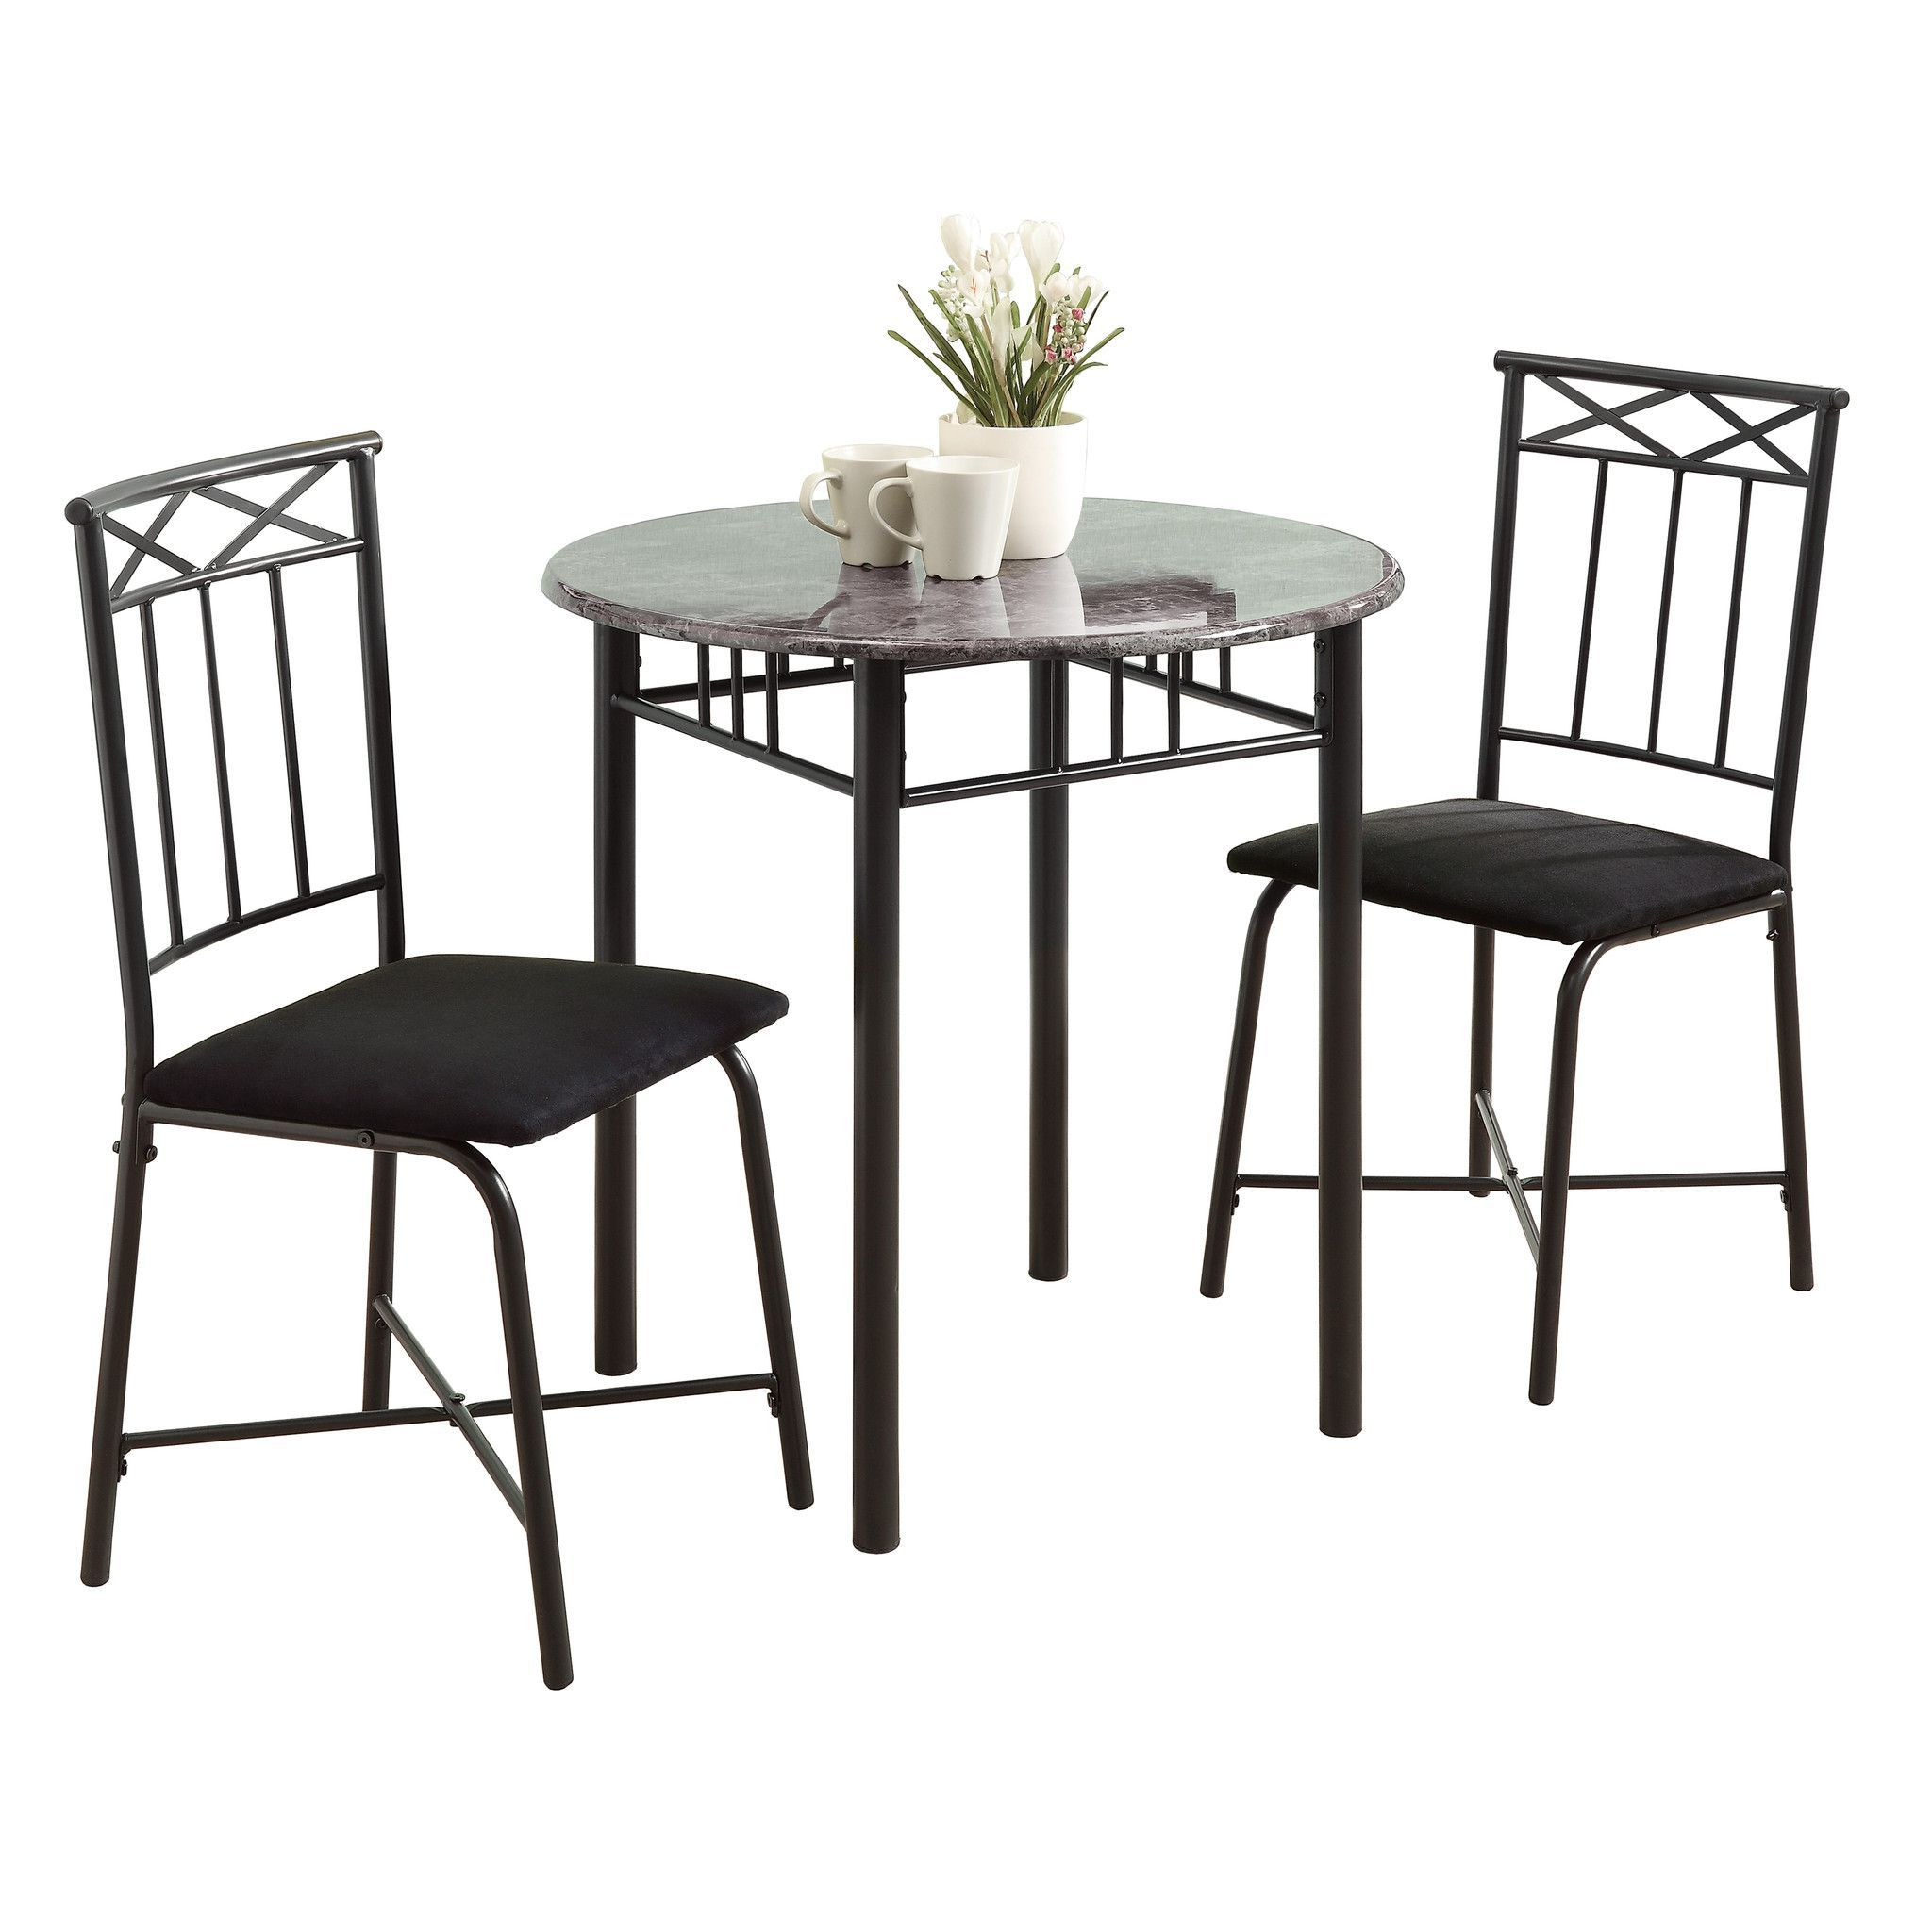 Buy Monarch Specialties I 3065 Dining Set – 3Pcs Set / Grey Marble For Latest Kinsler 3 Piece Bistro Sets (Gallery 2 of 20)